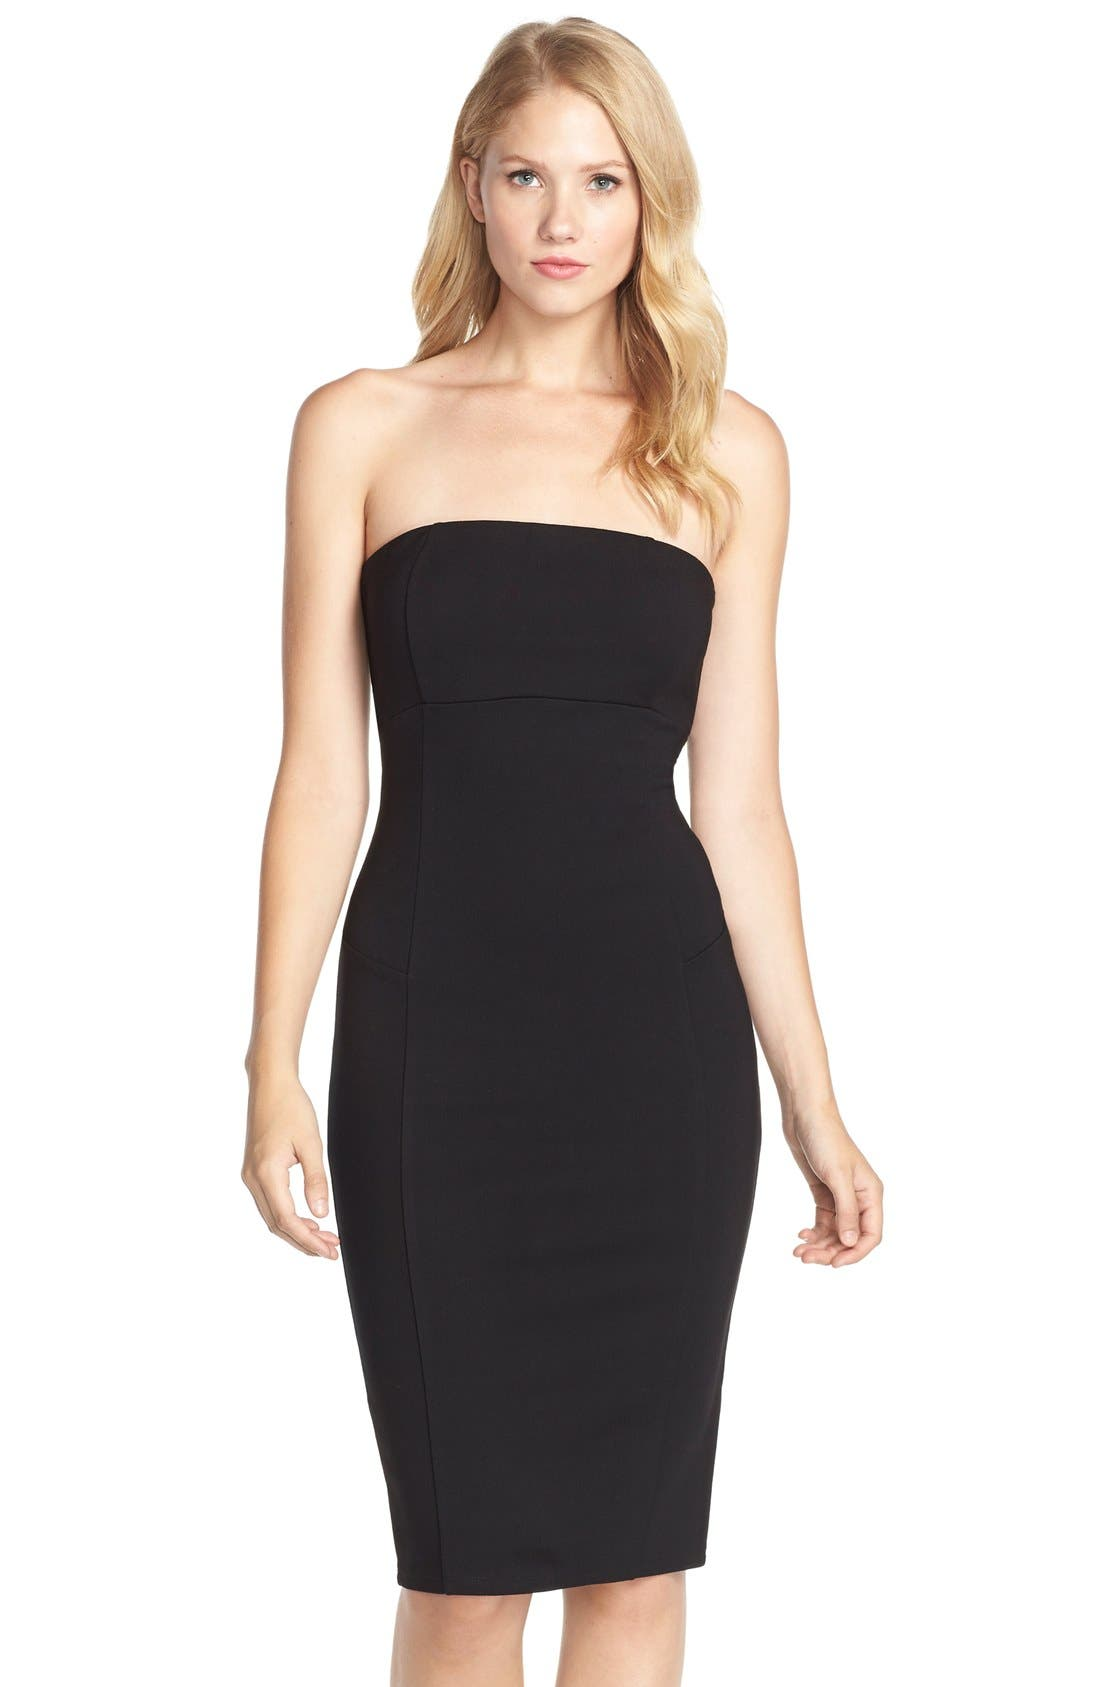 Main Image - Felicity & Coco Brianna Strapless Knit Body-Con Dress (Nordstrom Exclusive)